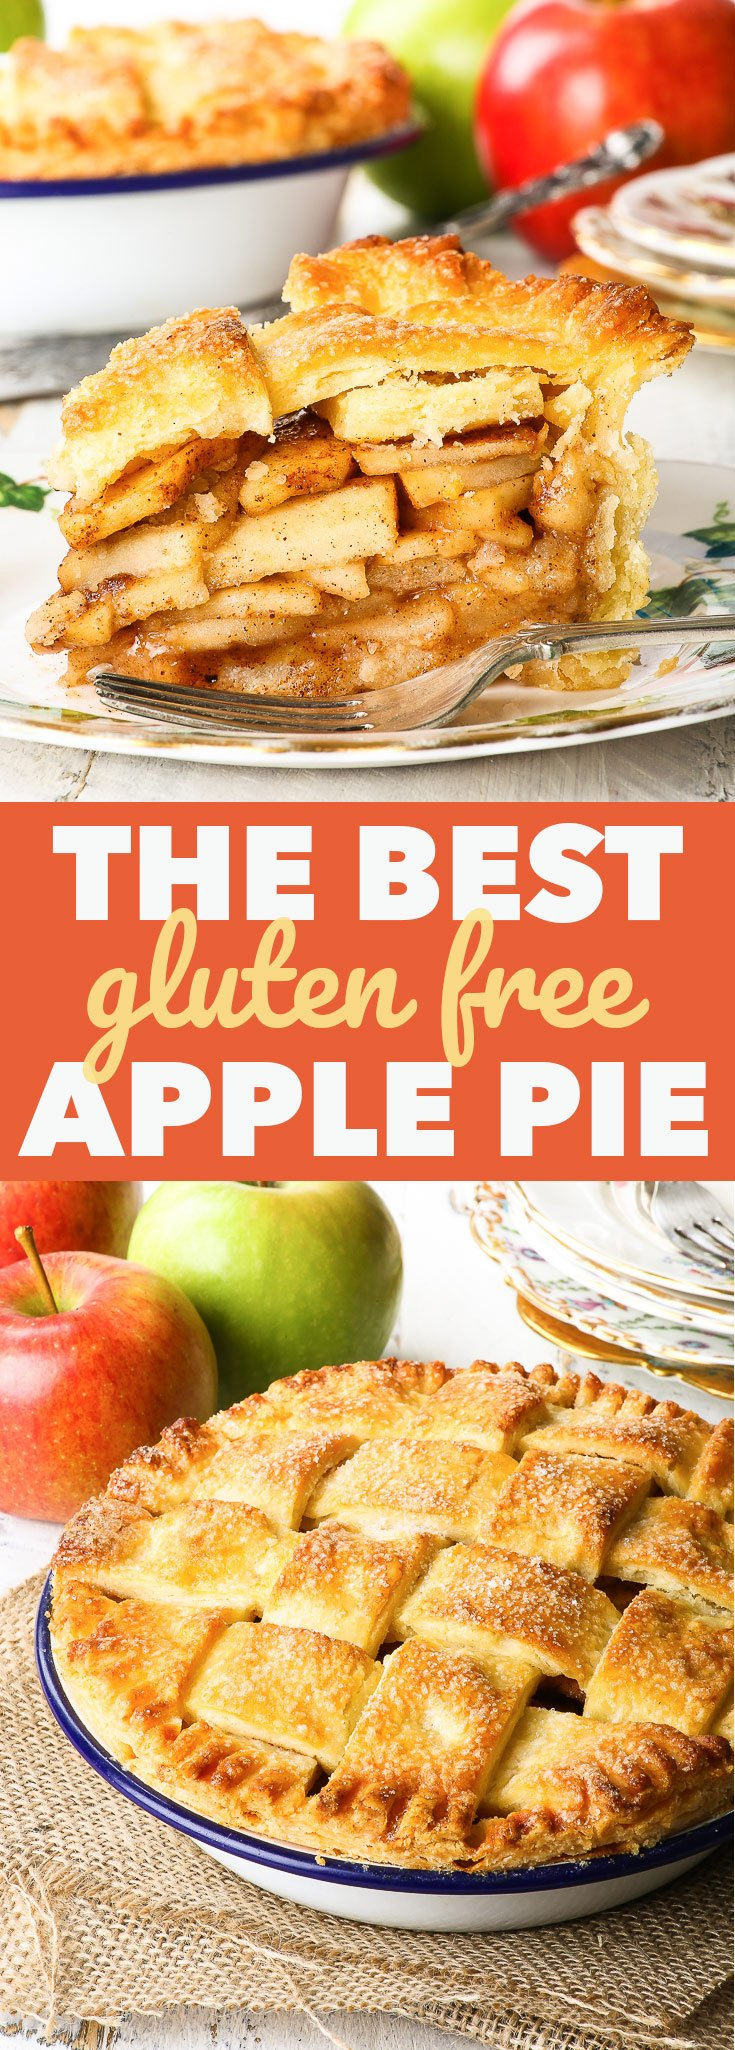 Gluten Free Apple Pie {gluten, nut & soy free, egg free version} - This gluten free apple pie is the real deal – with a flaky, buttery gluten free pie crust and a delicious apple pie filling with a kick of cinnamon and an underlying tone of caramel. Where does the caramel come in? Read on, and you'll find out. Trust me, you won't be disappointed! The perfect fall dessert recipe, super easy to make… and even easier to eat.